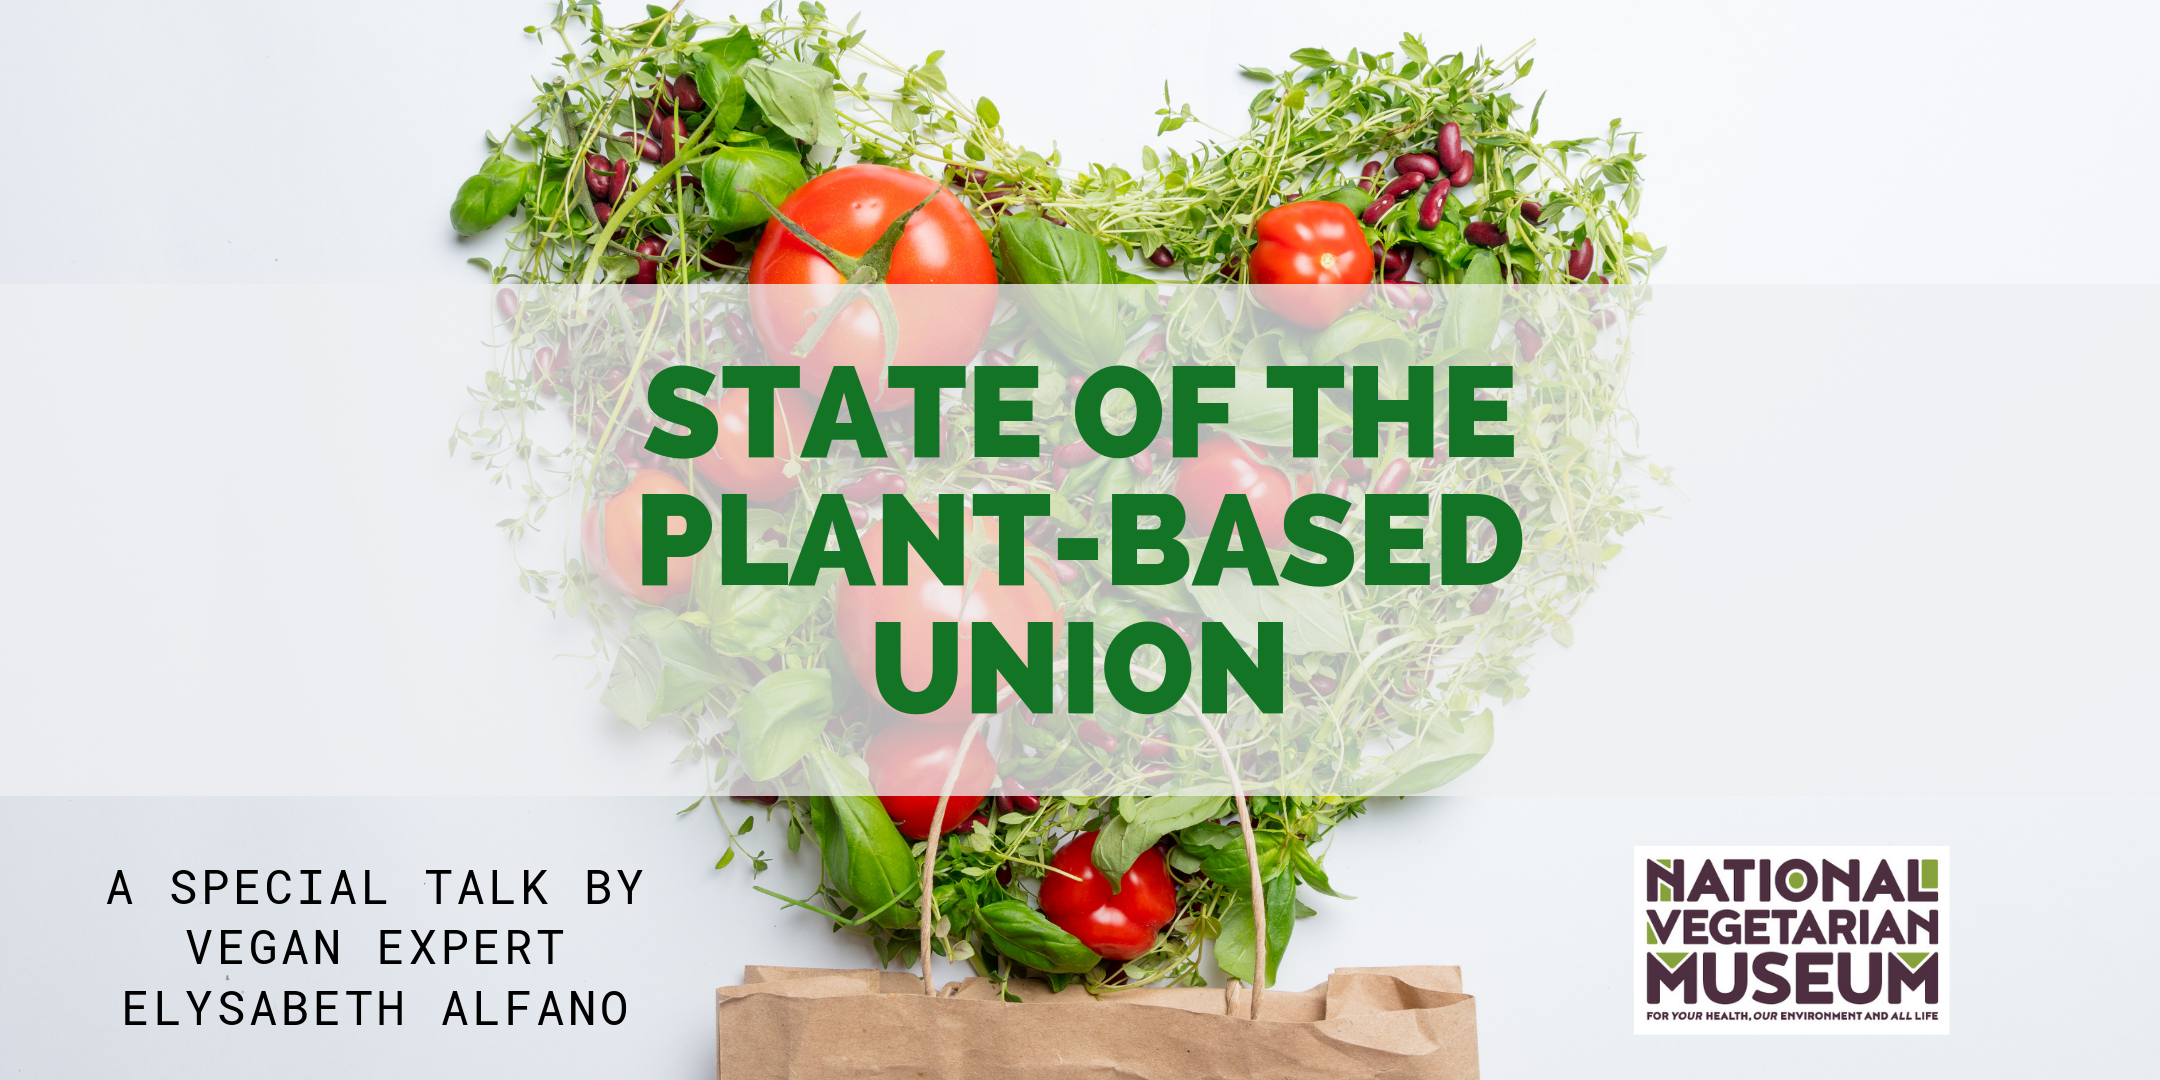 State of the Plant-Based Union